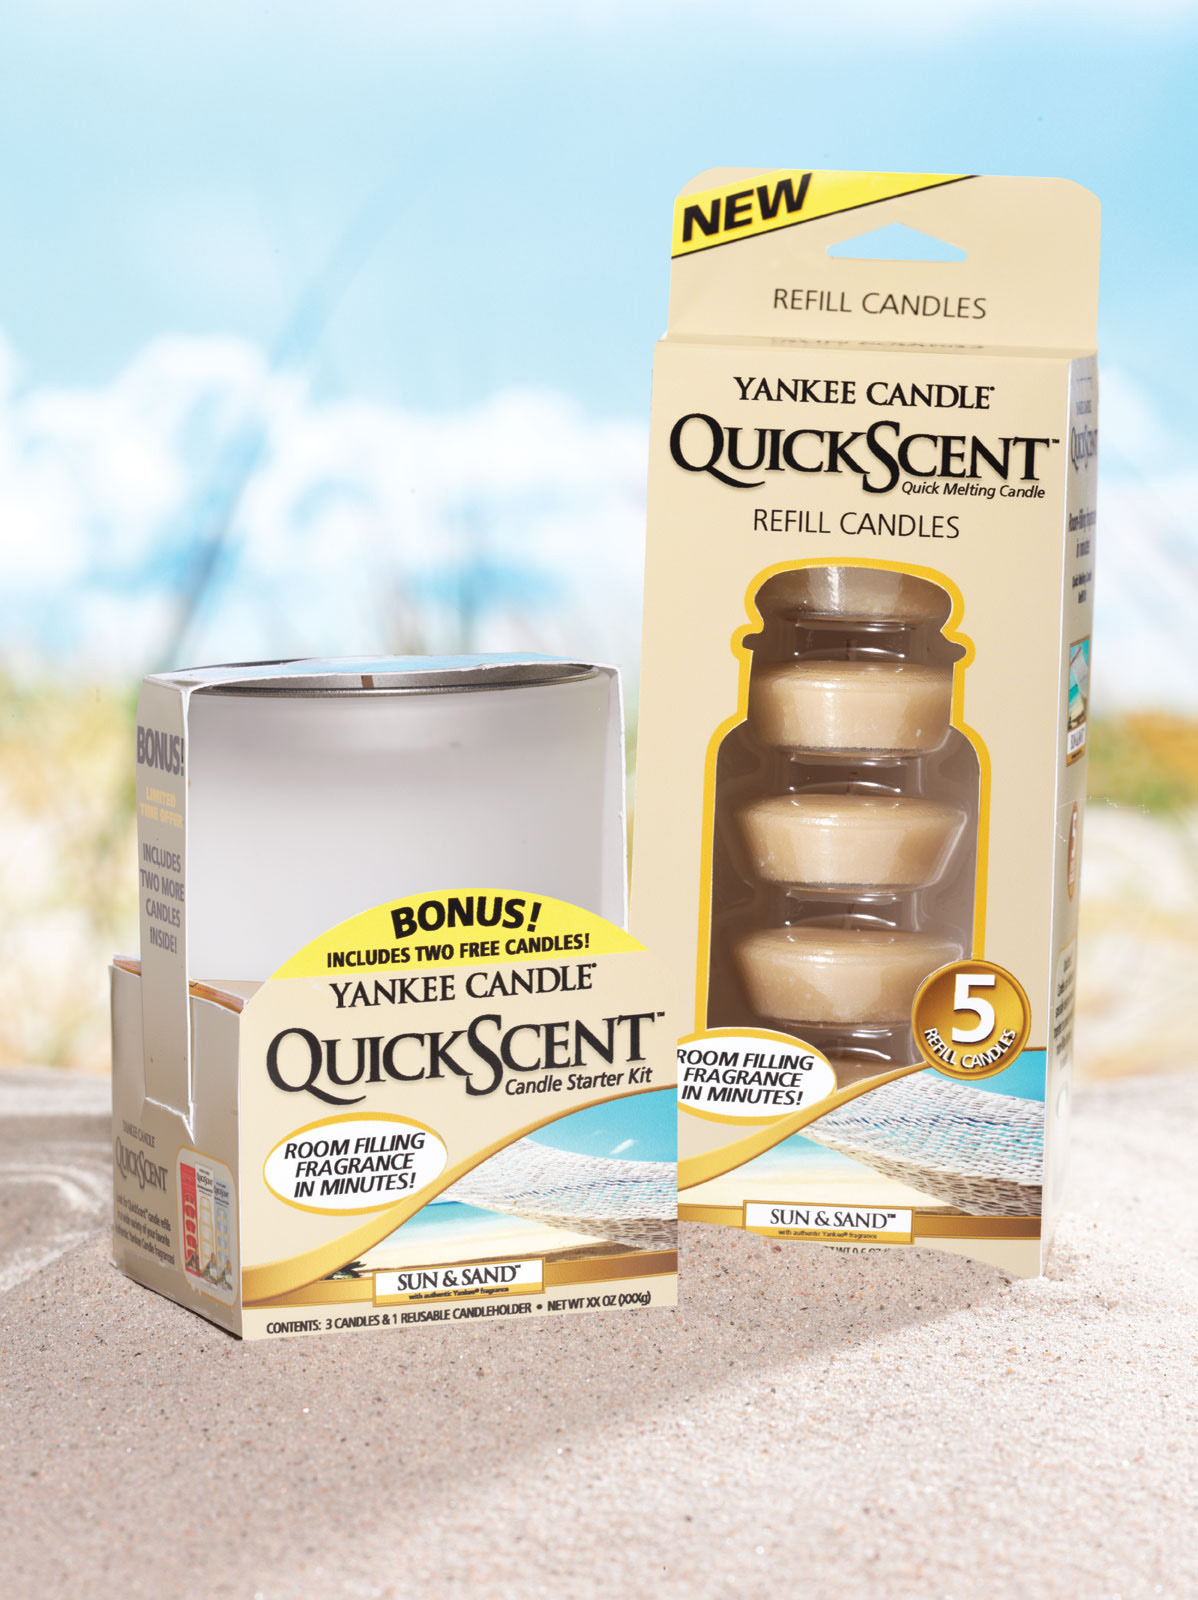 yankee candle launched a new candle line called quickscent this